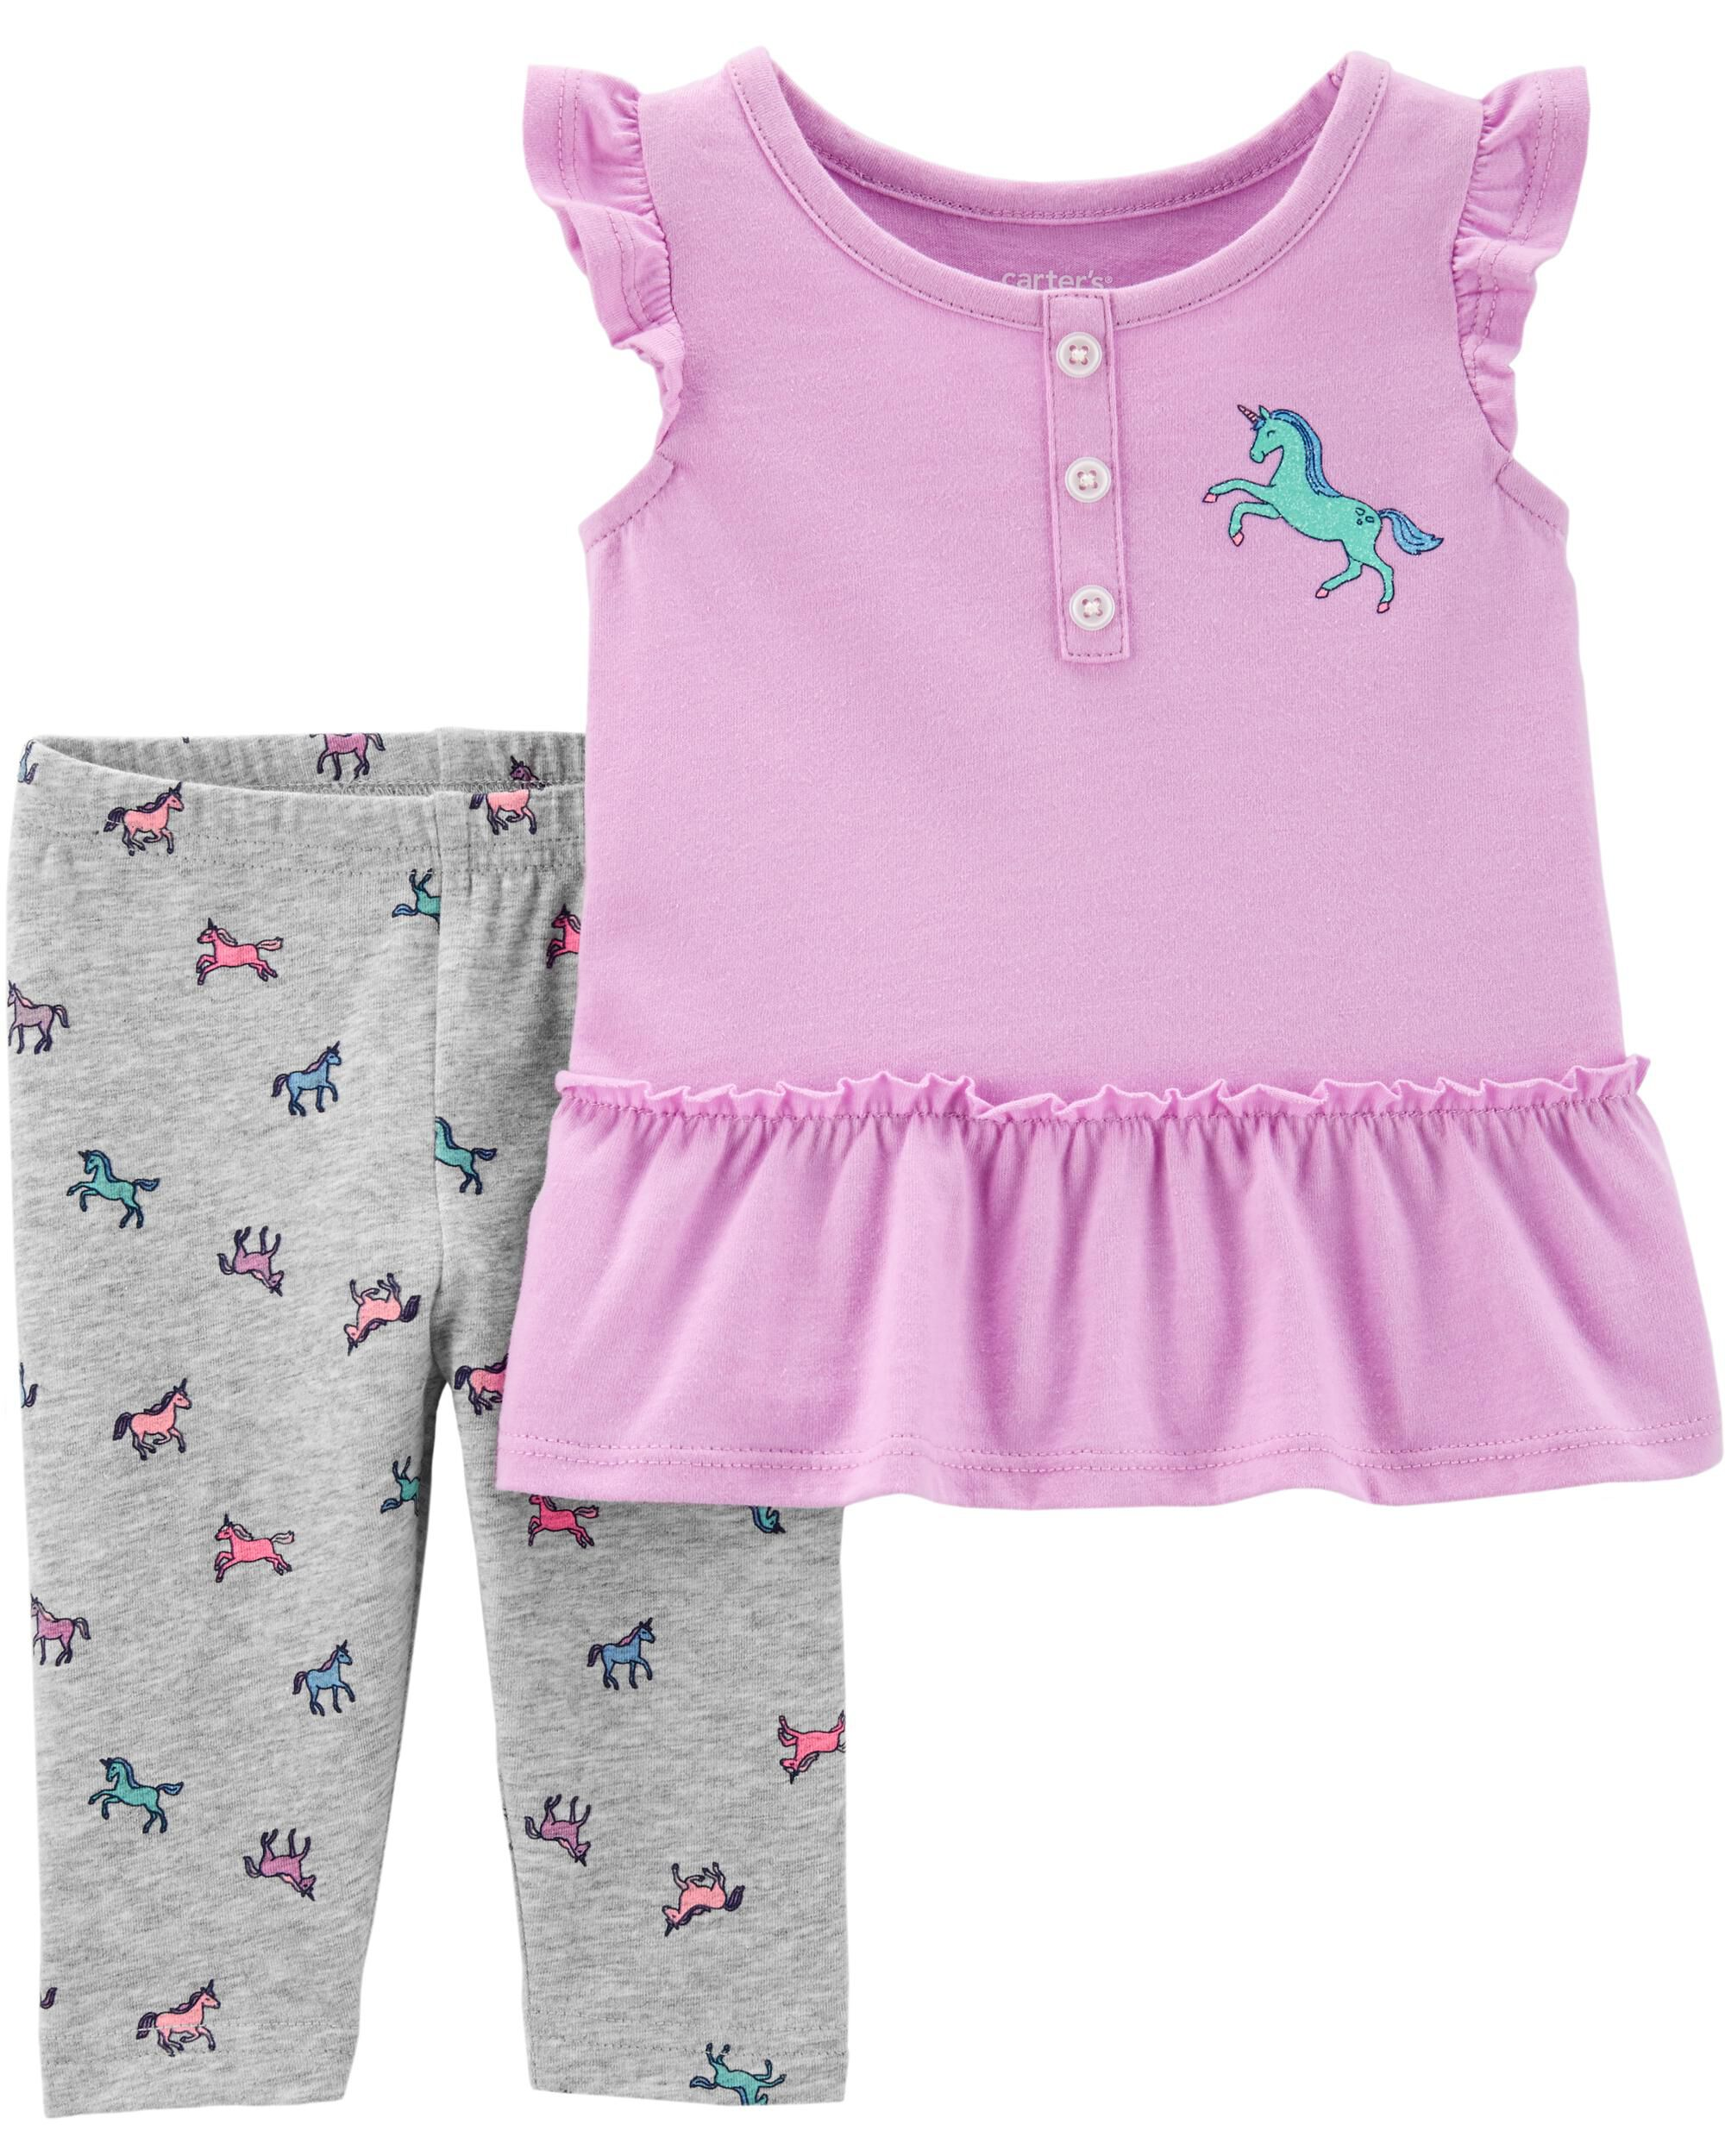 Baby & Toddler Clothing The Cheapest Price Baby Girls Outfit 1.5-2 Sufficient Supply